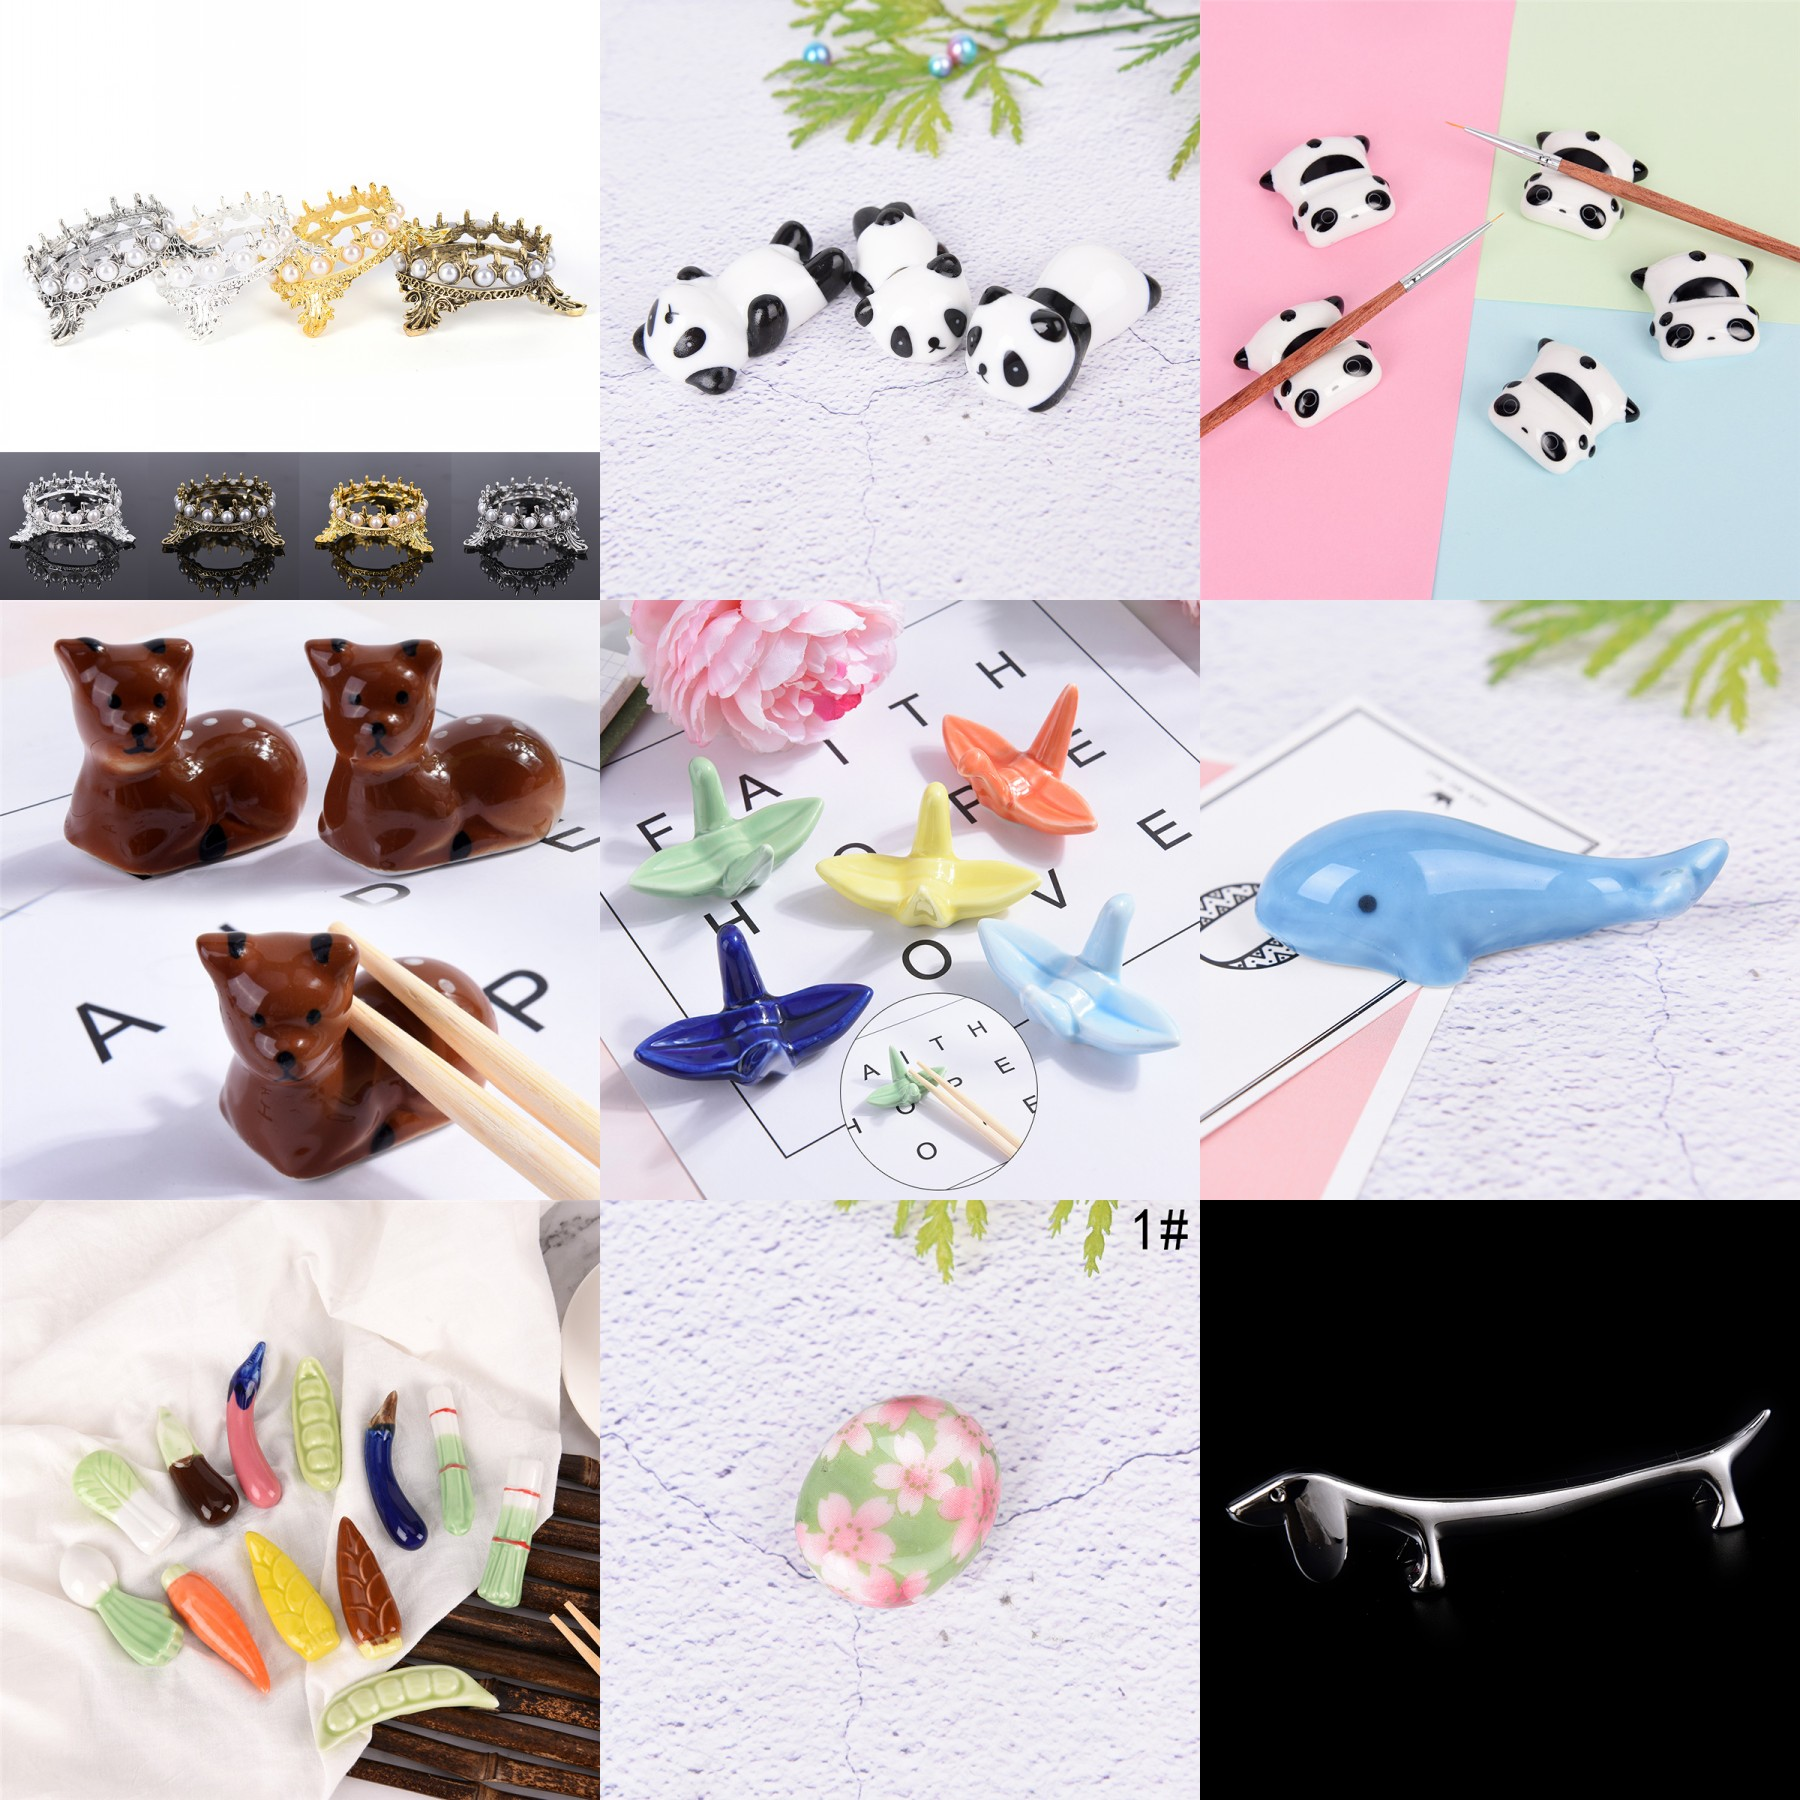 US $0 67 16% OFF|Crown Pearls Dog Cat Fruit Pencil Pens Brushs Stand Rack  Decor Salon Home DIY Manicure Nail Carving Drawing Pens Brushes Holder-in